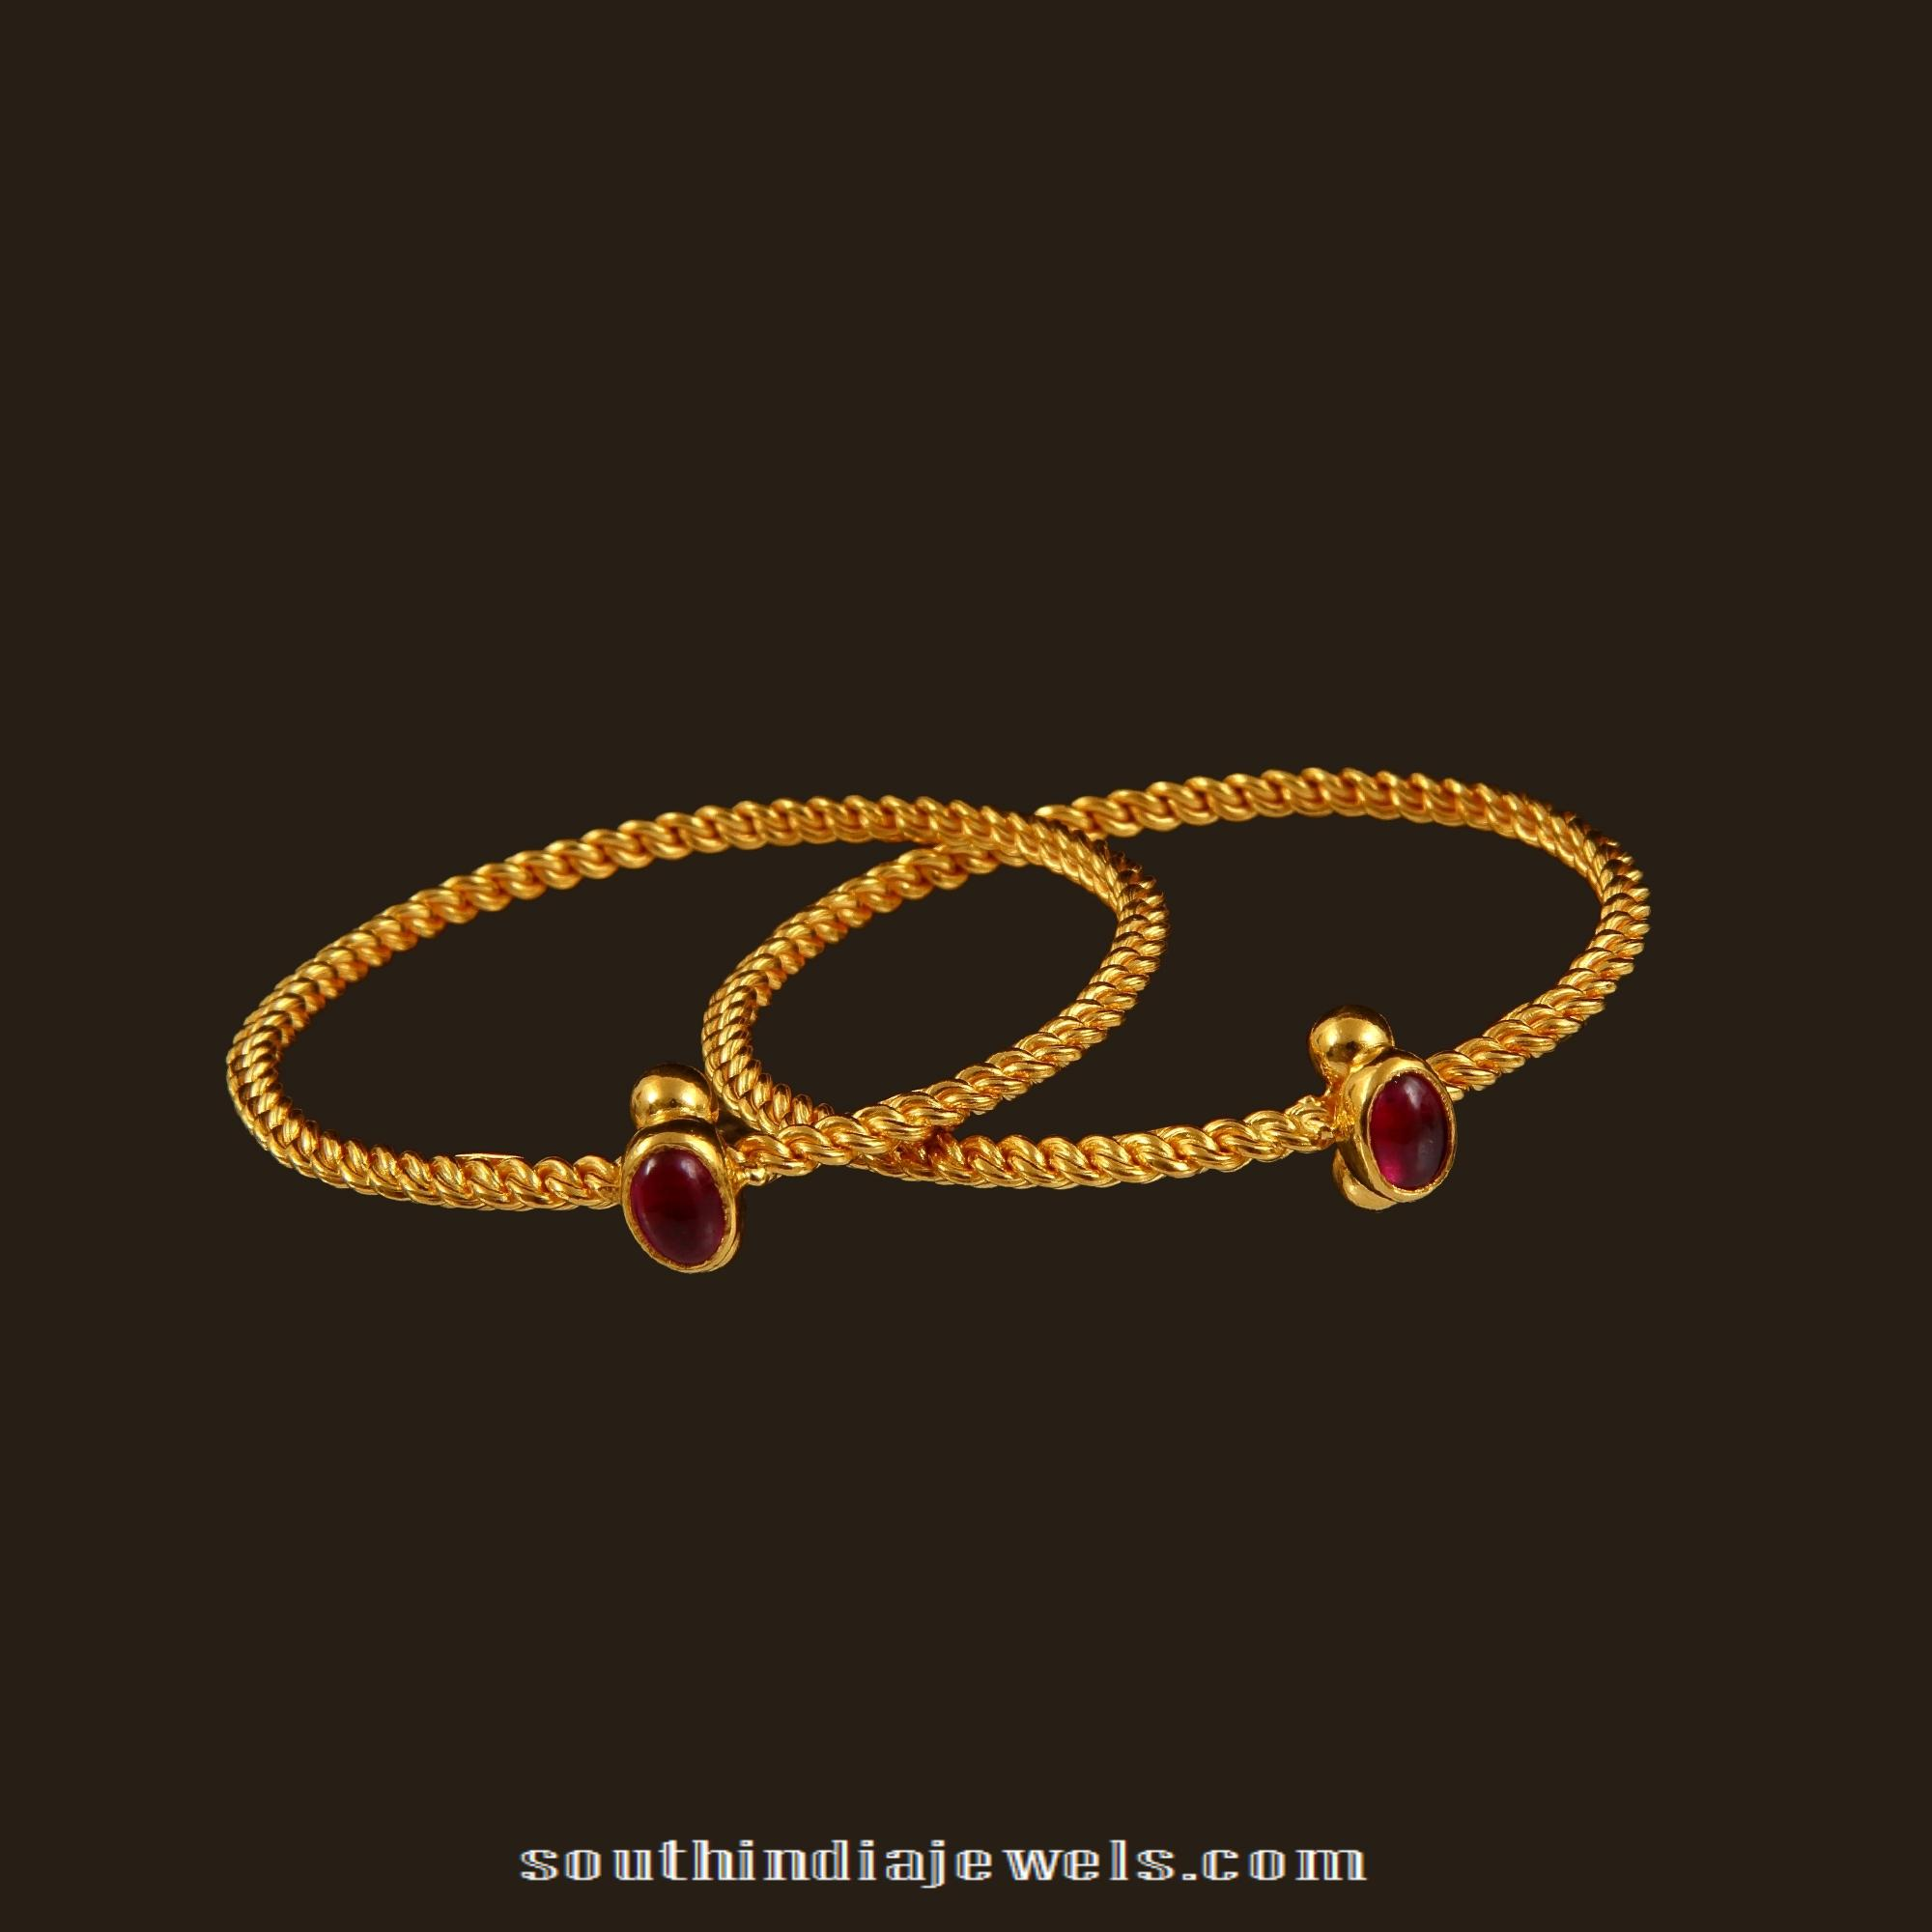 Gold Baby Bangles From Vbj South India Jewels